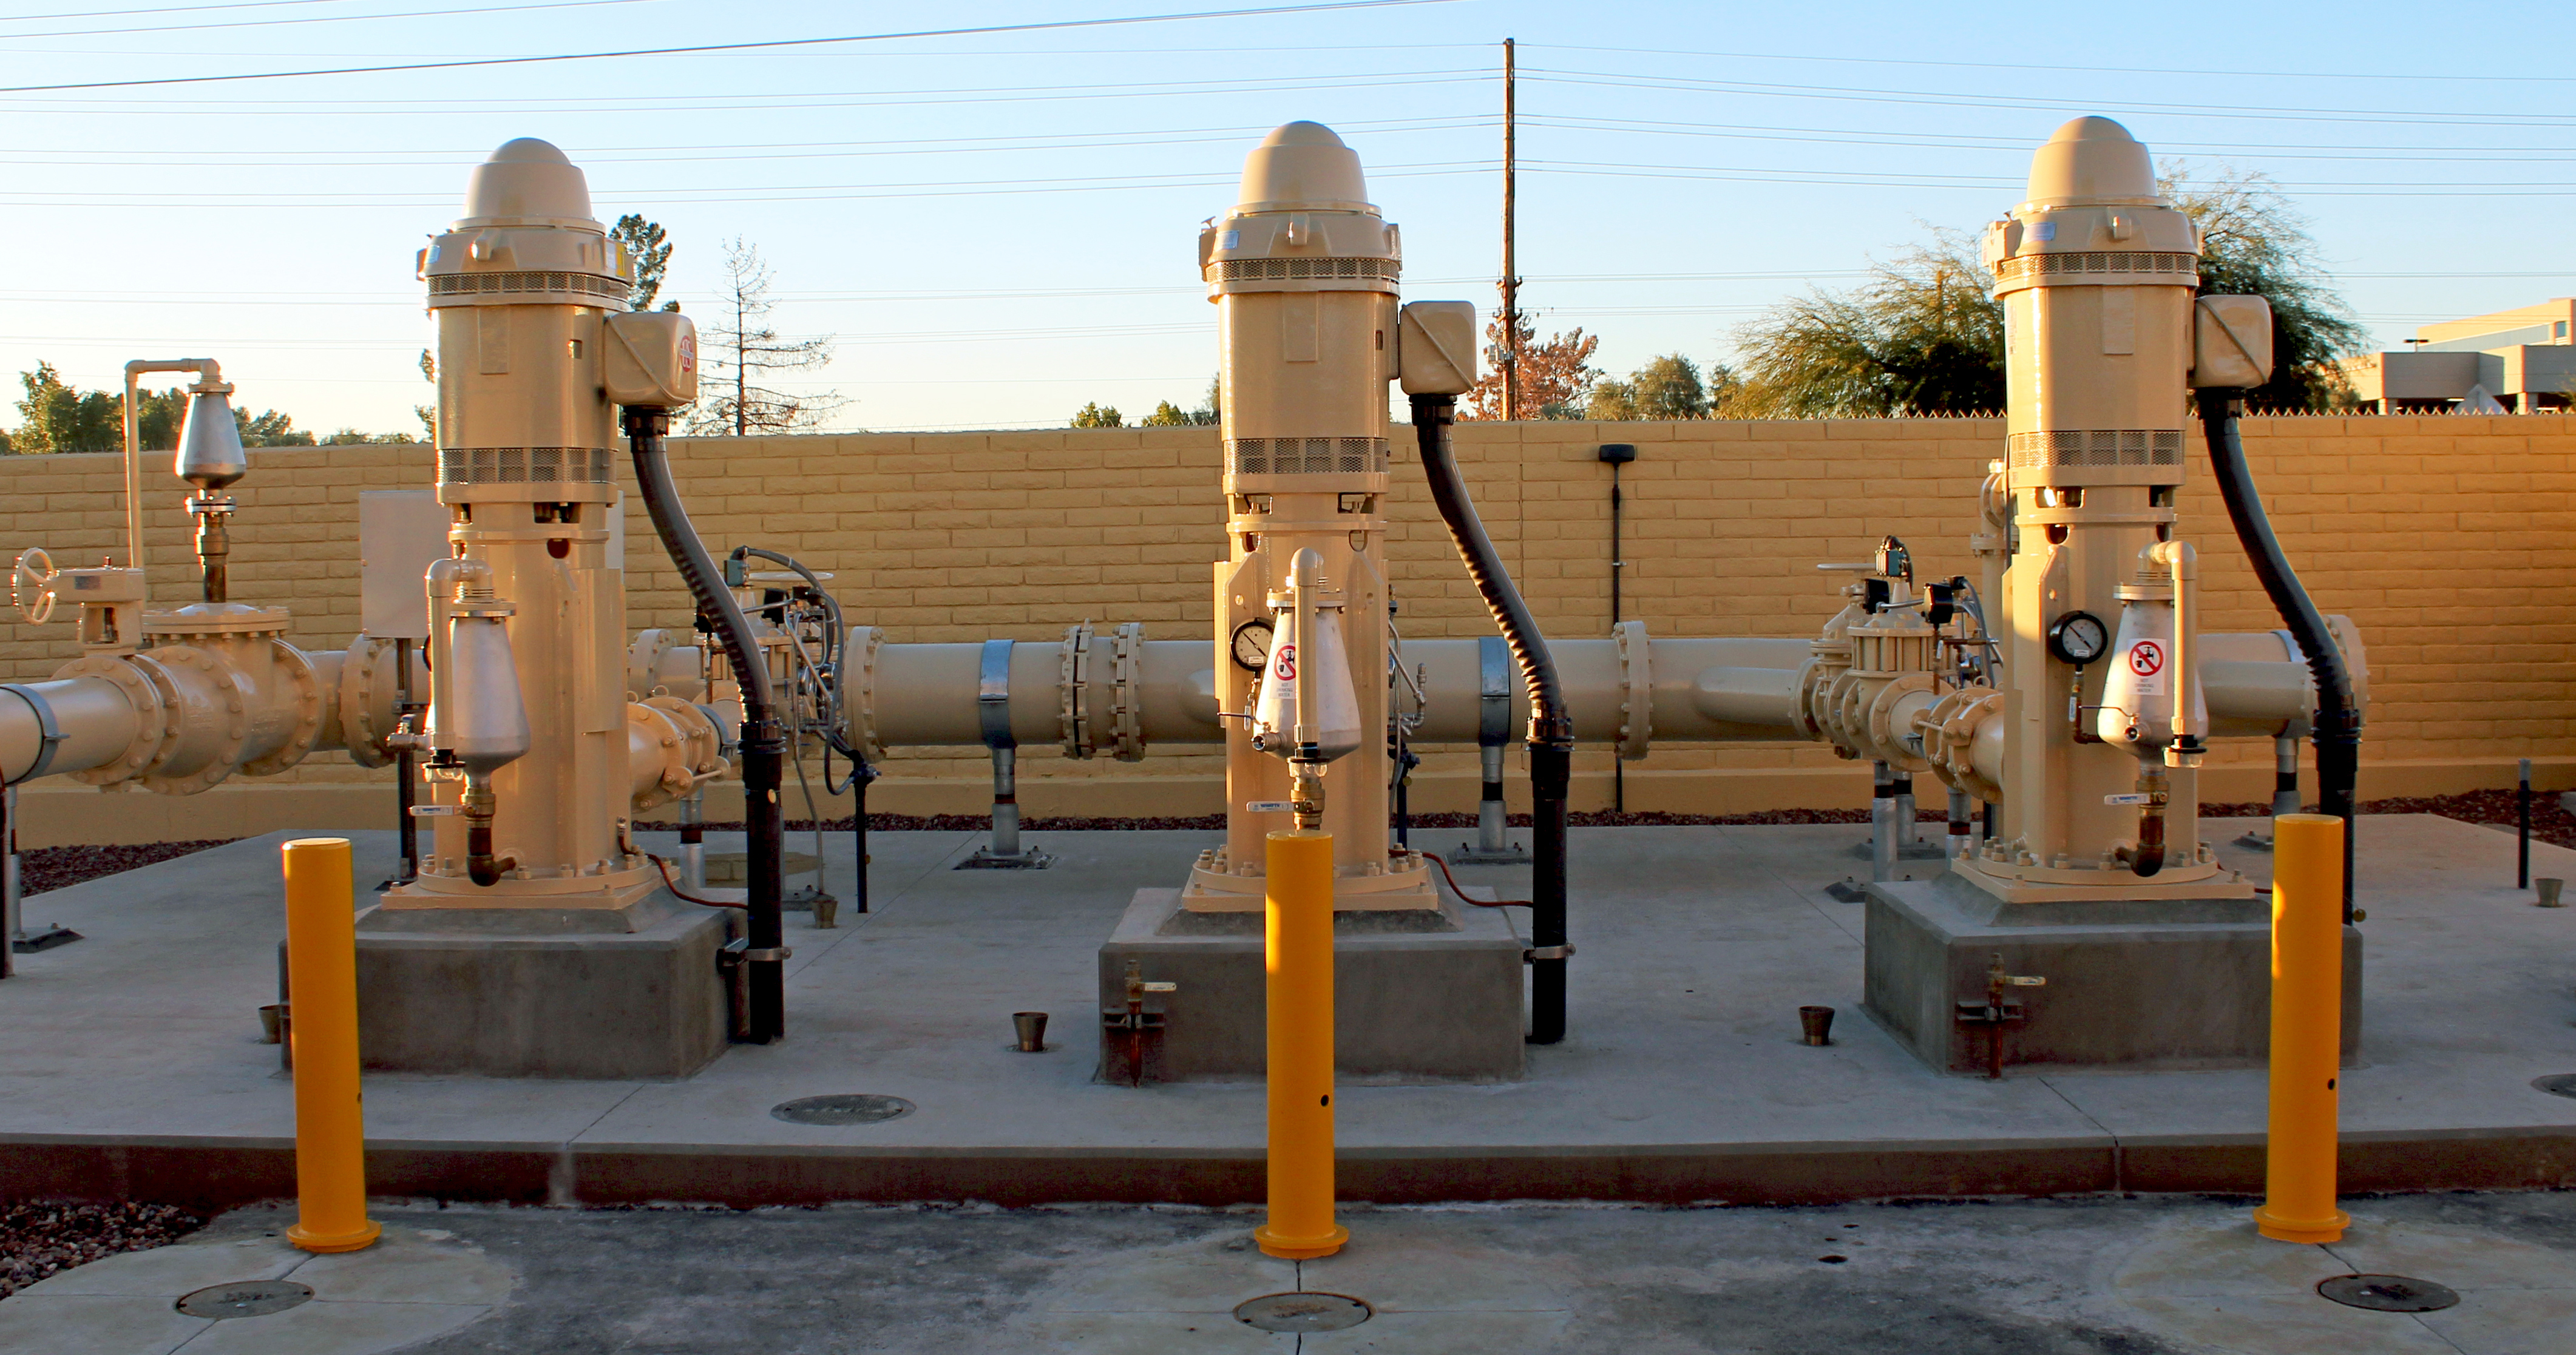 MOON VALLEY PUMP STATION & WATER MAIN